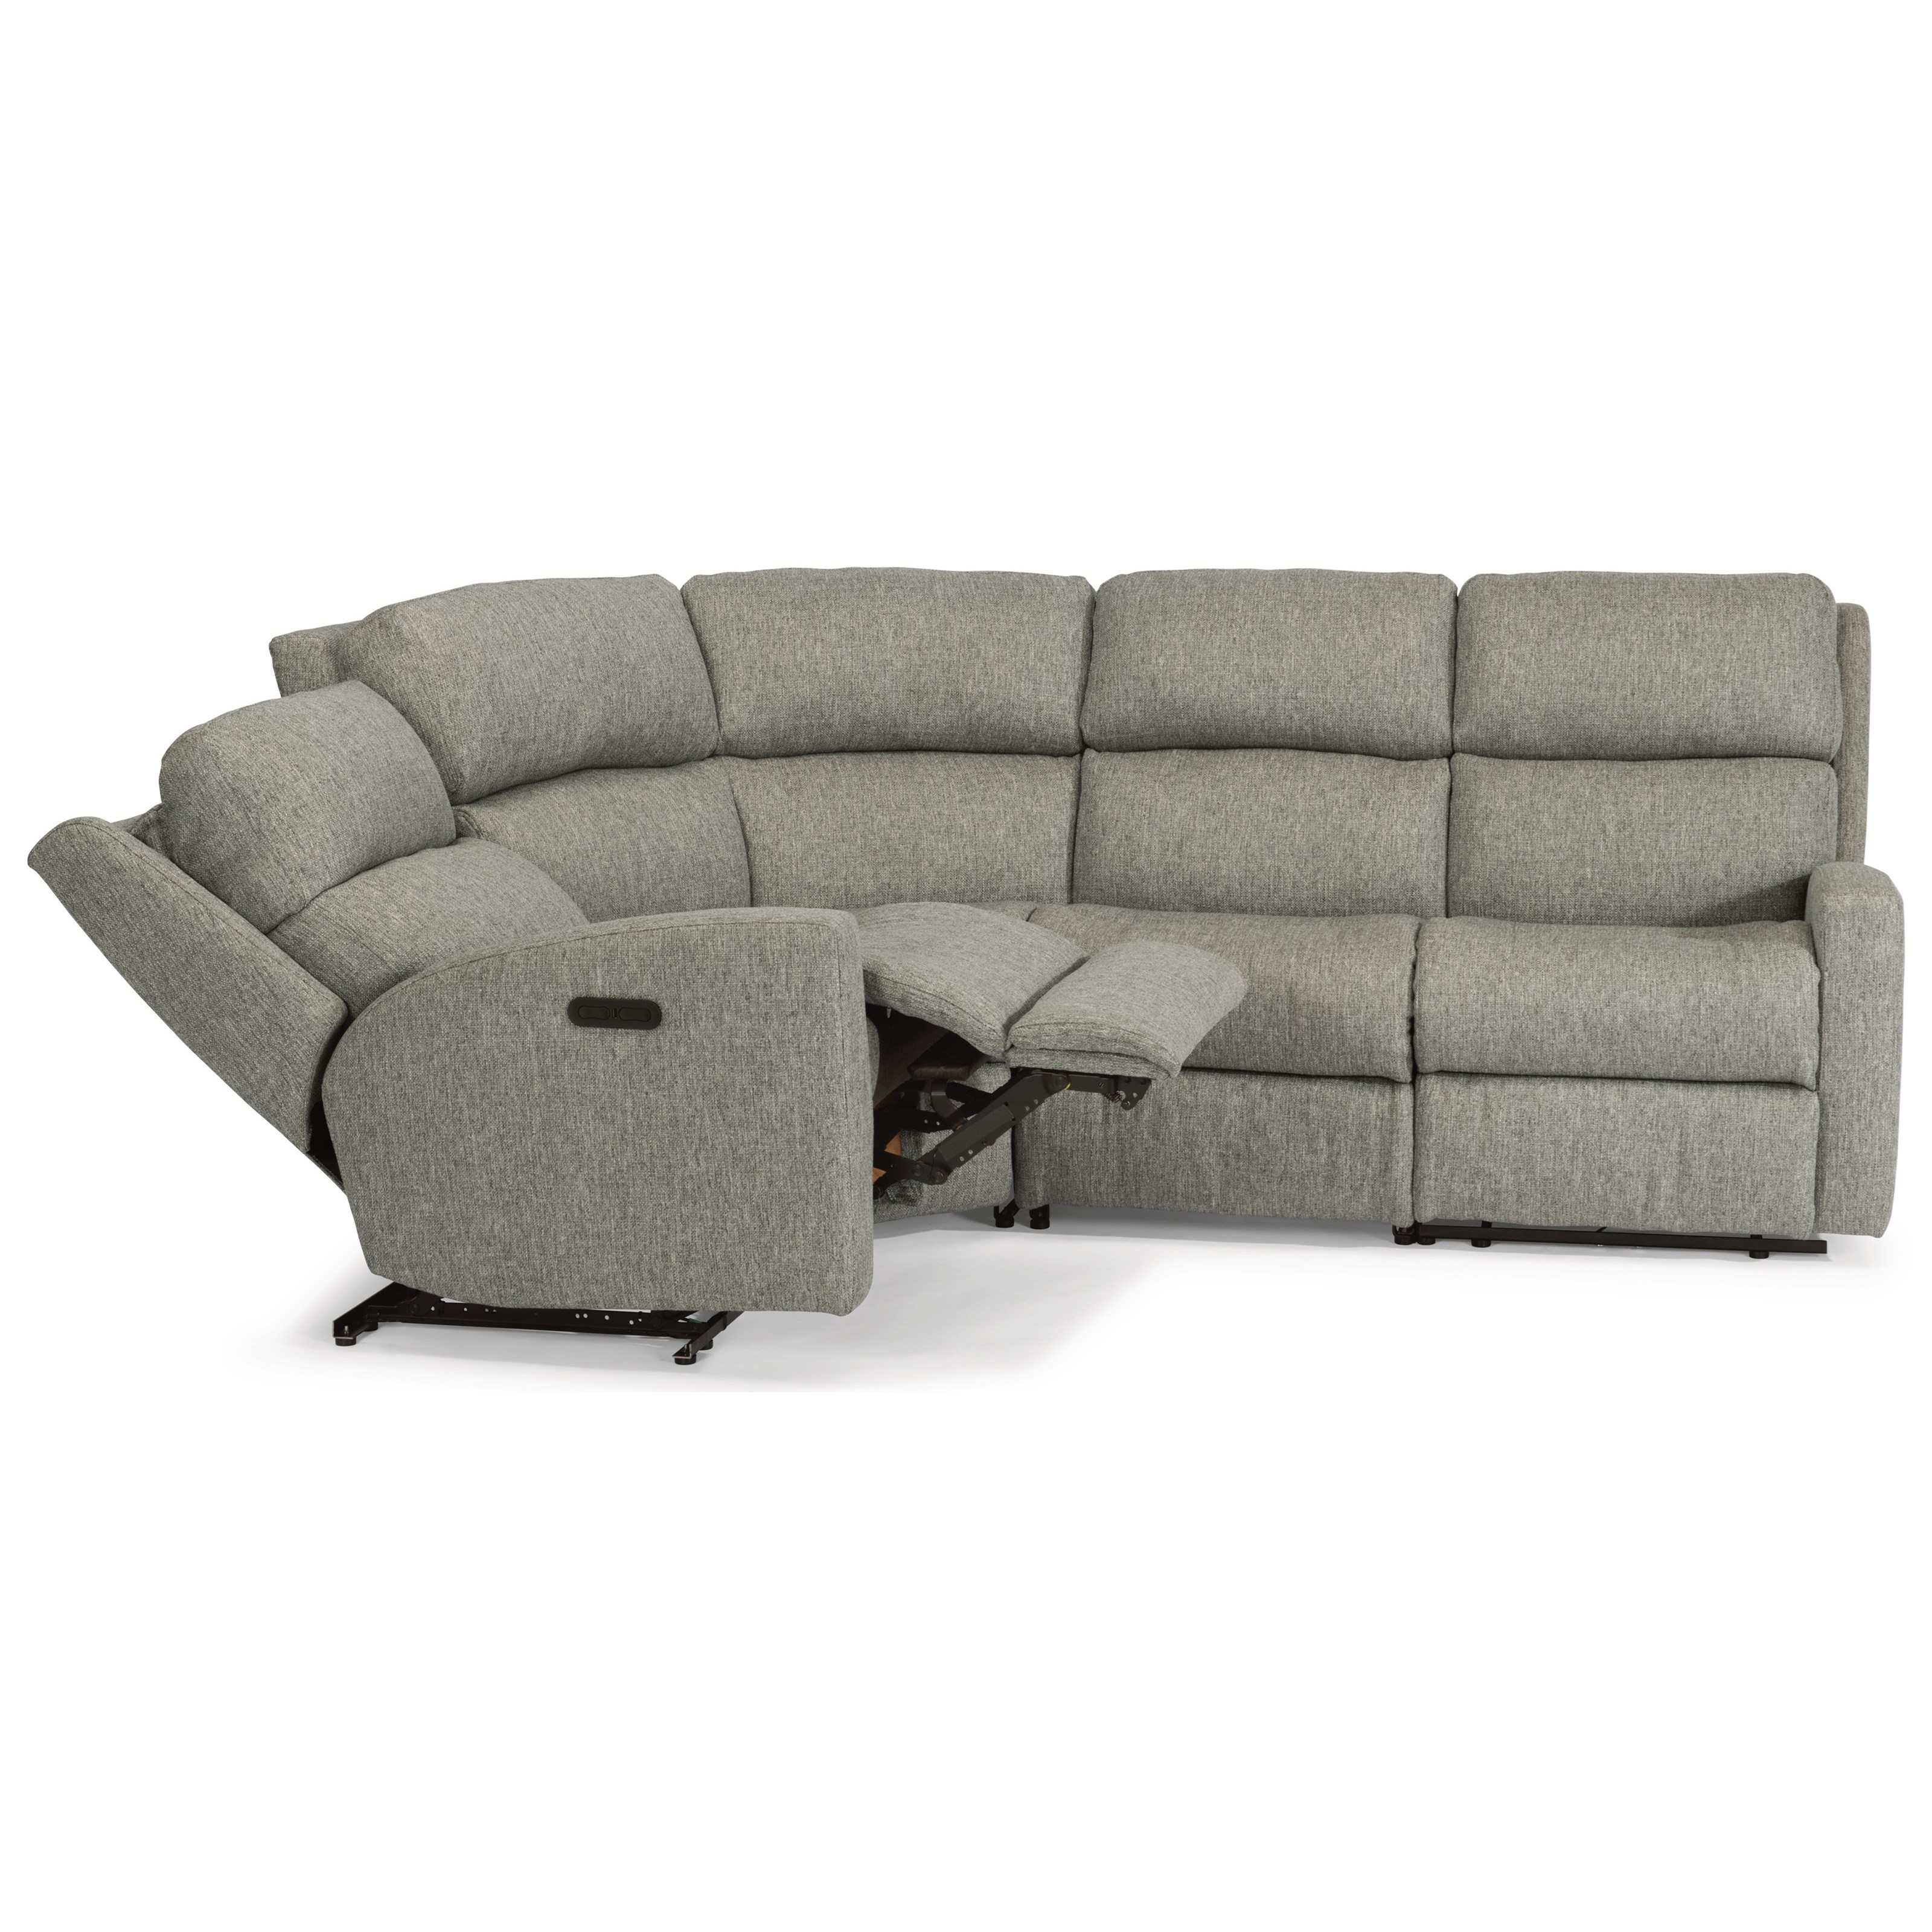 4 Pc Reclining Sectional w/ Pwr Headrests